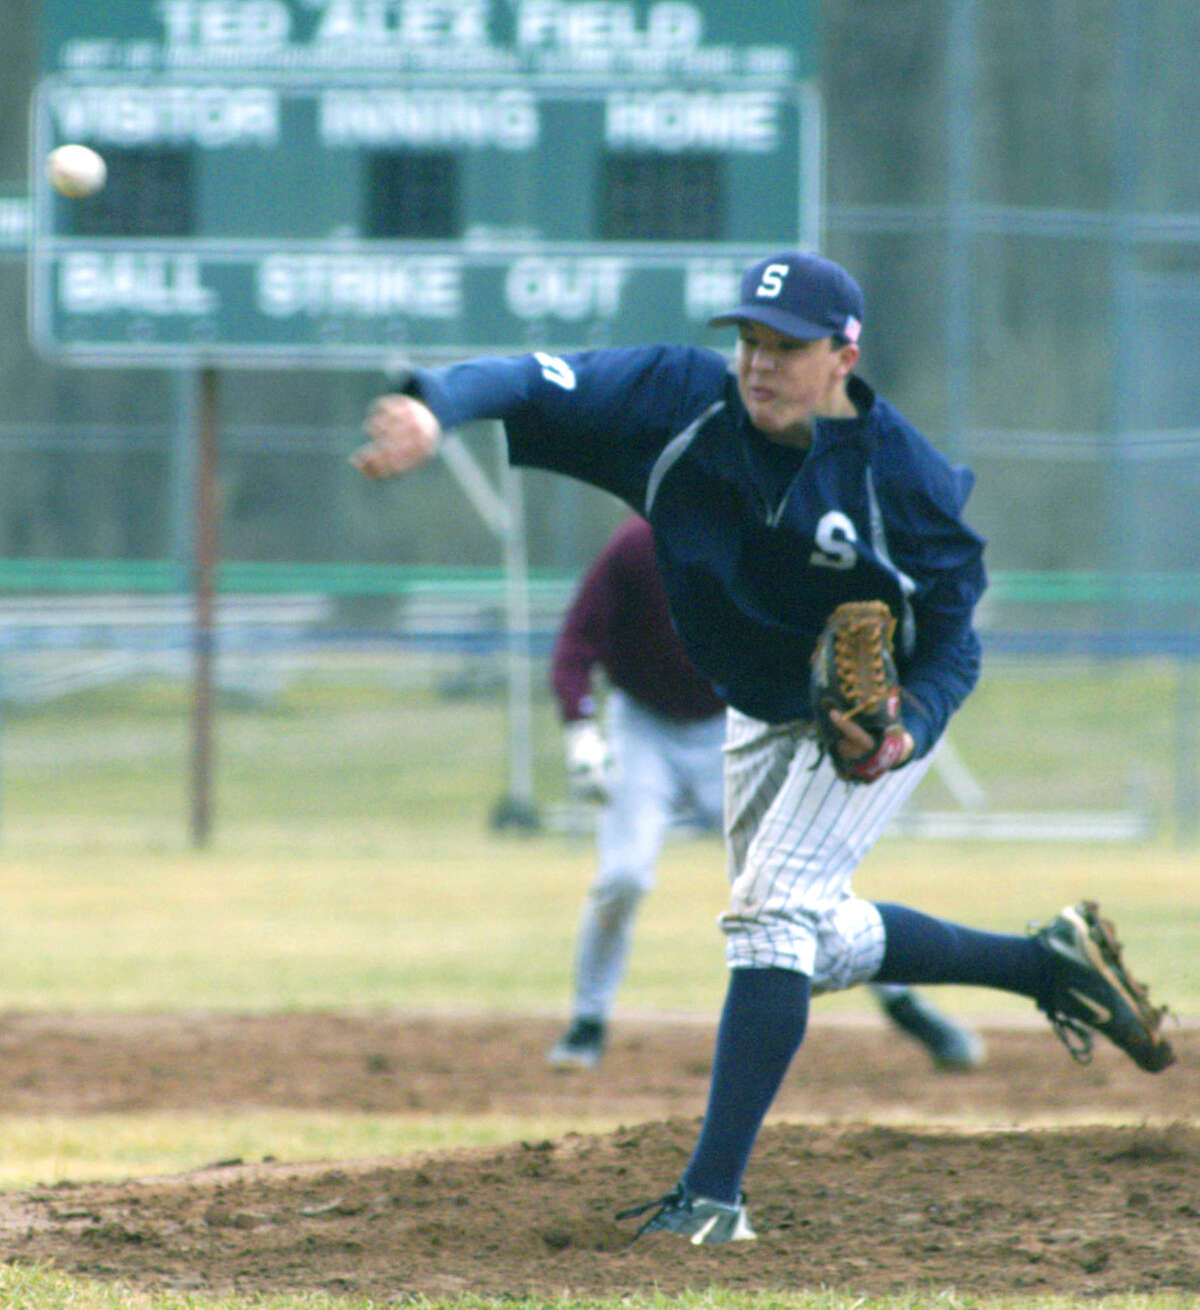 Gavin Hauspurg of the Spartans fires a high, hard one to a Torrington batter during a pre-season scrimmage for Shepaug Valley High School baseball at Alex Field in Washington Depot. April 2013